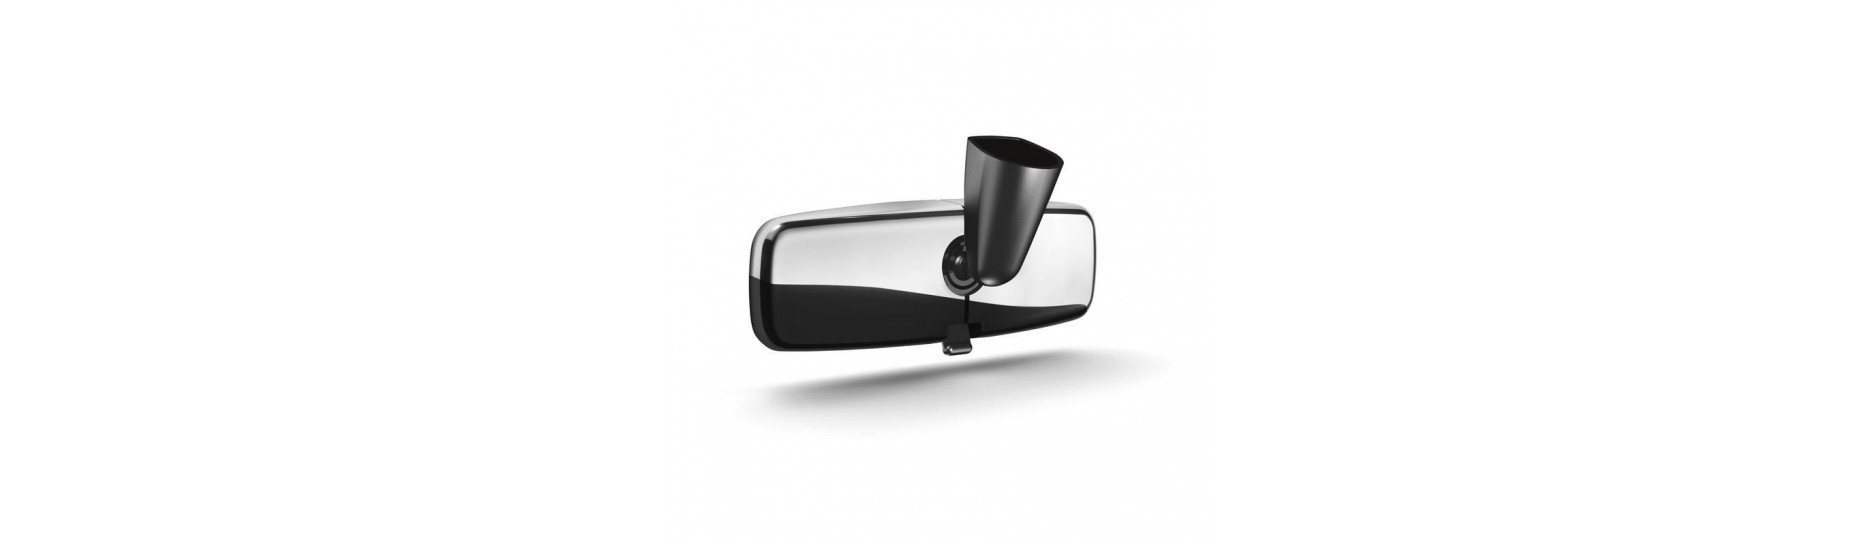 Rear-view mirror covers Peugeot